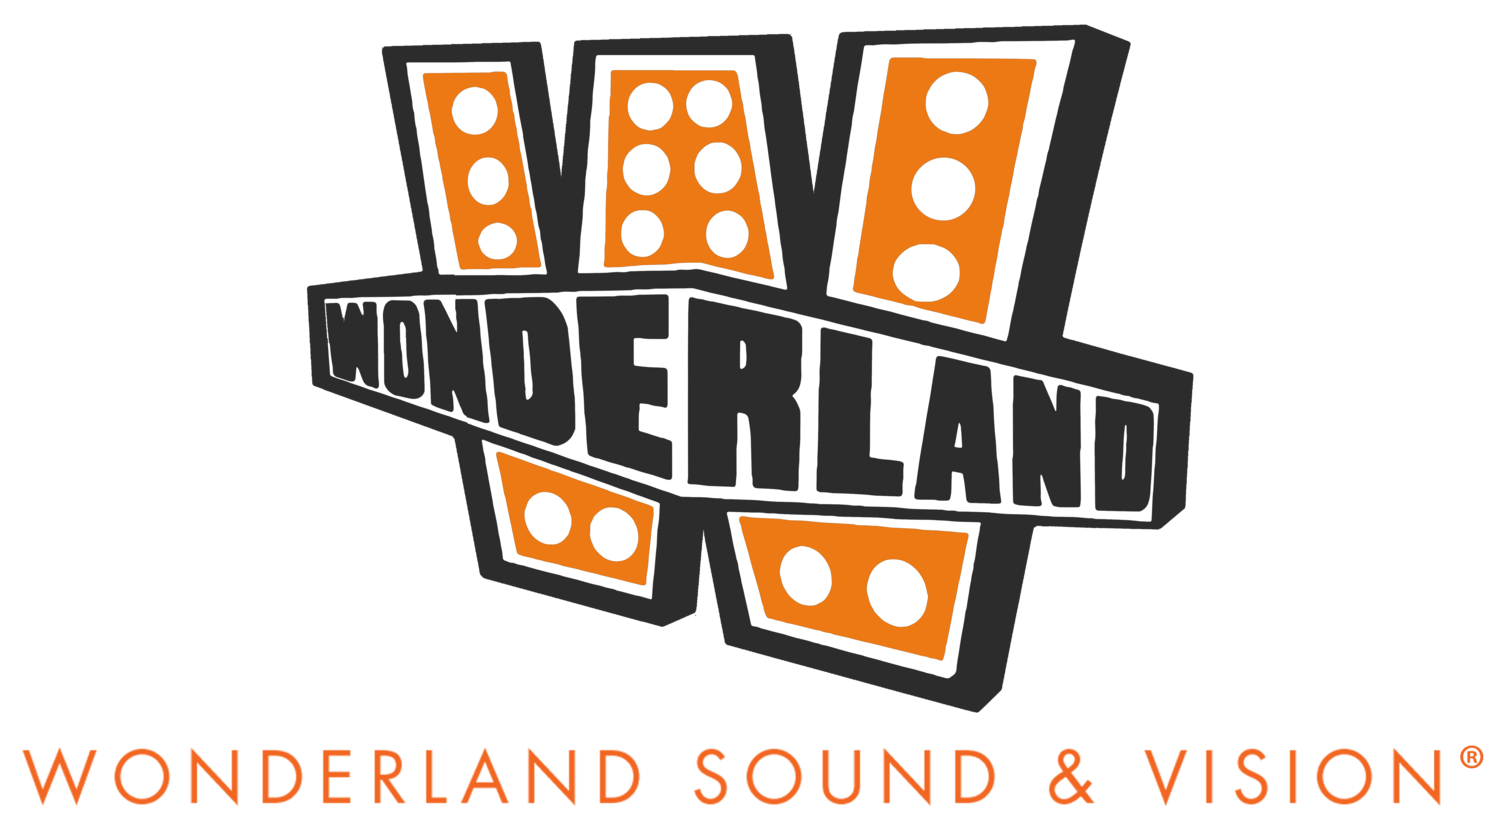 Wonderland Sound and Vision